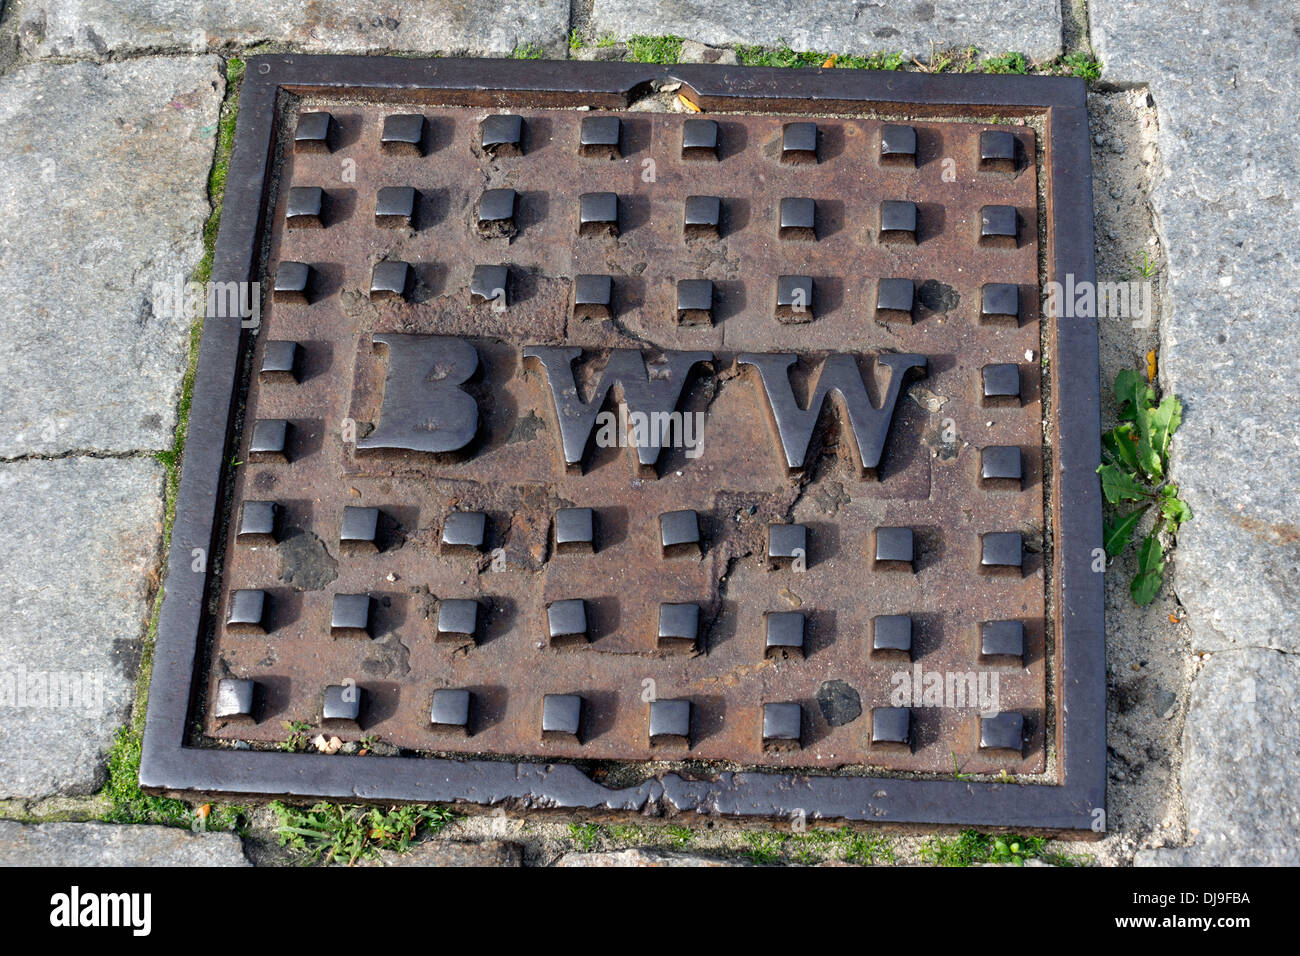 Manhole cover (BWW - Boston Water Works) in the streets of Boston, Massachusetts, USA - Stock Image